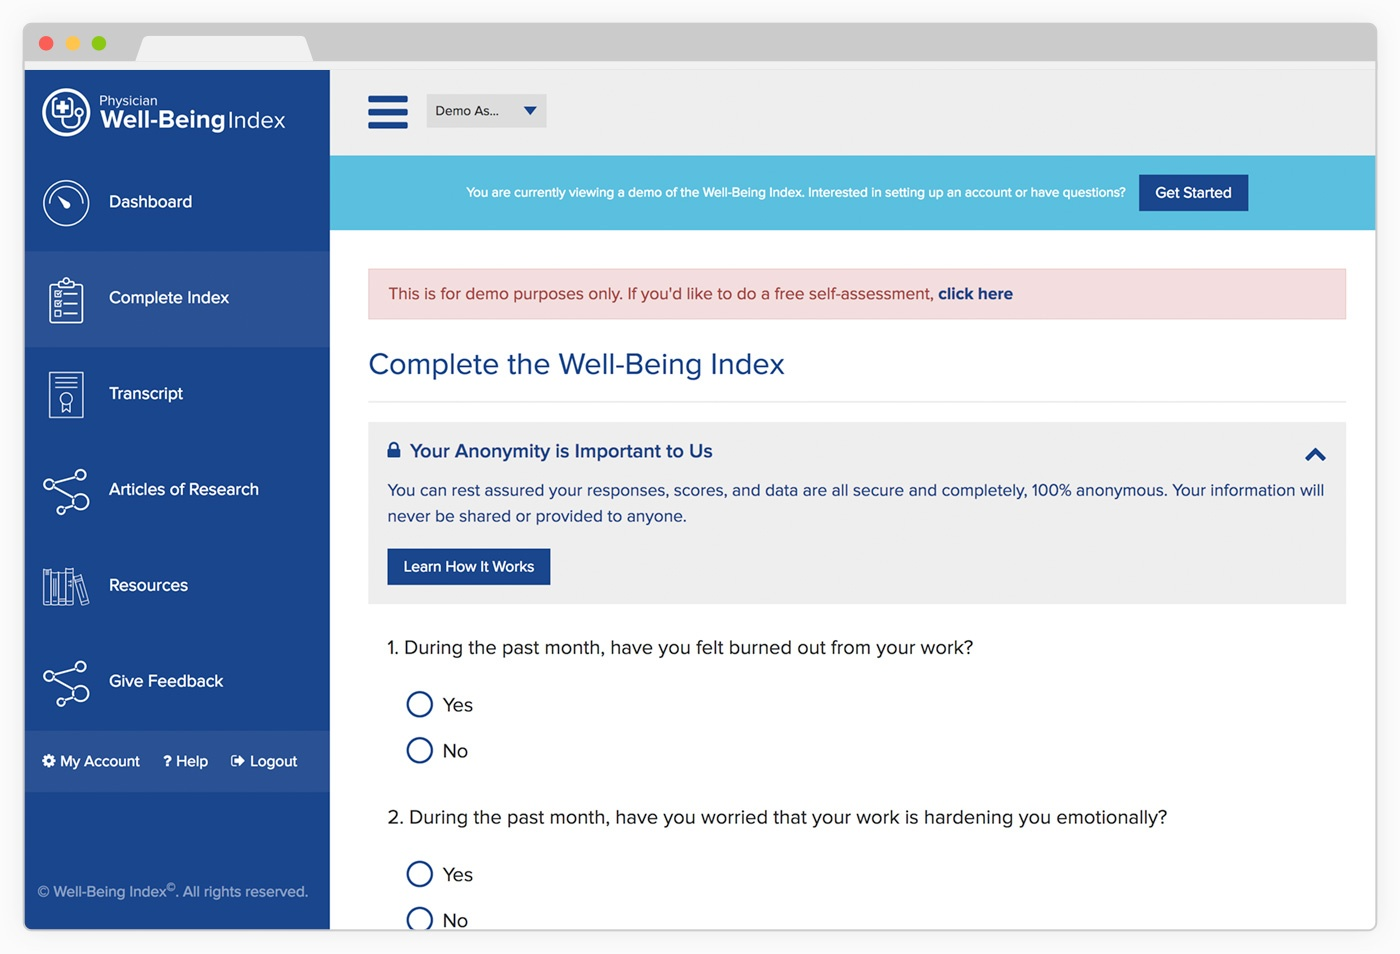 Physician Well-Being Index Demo